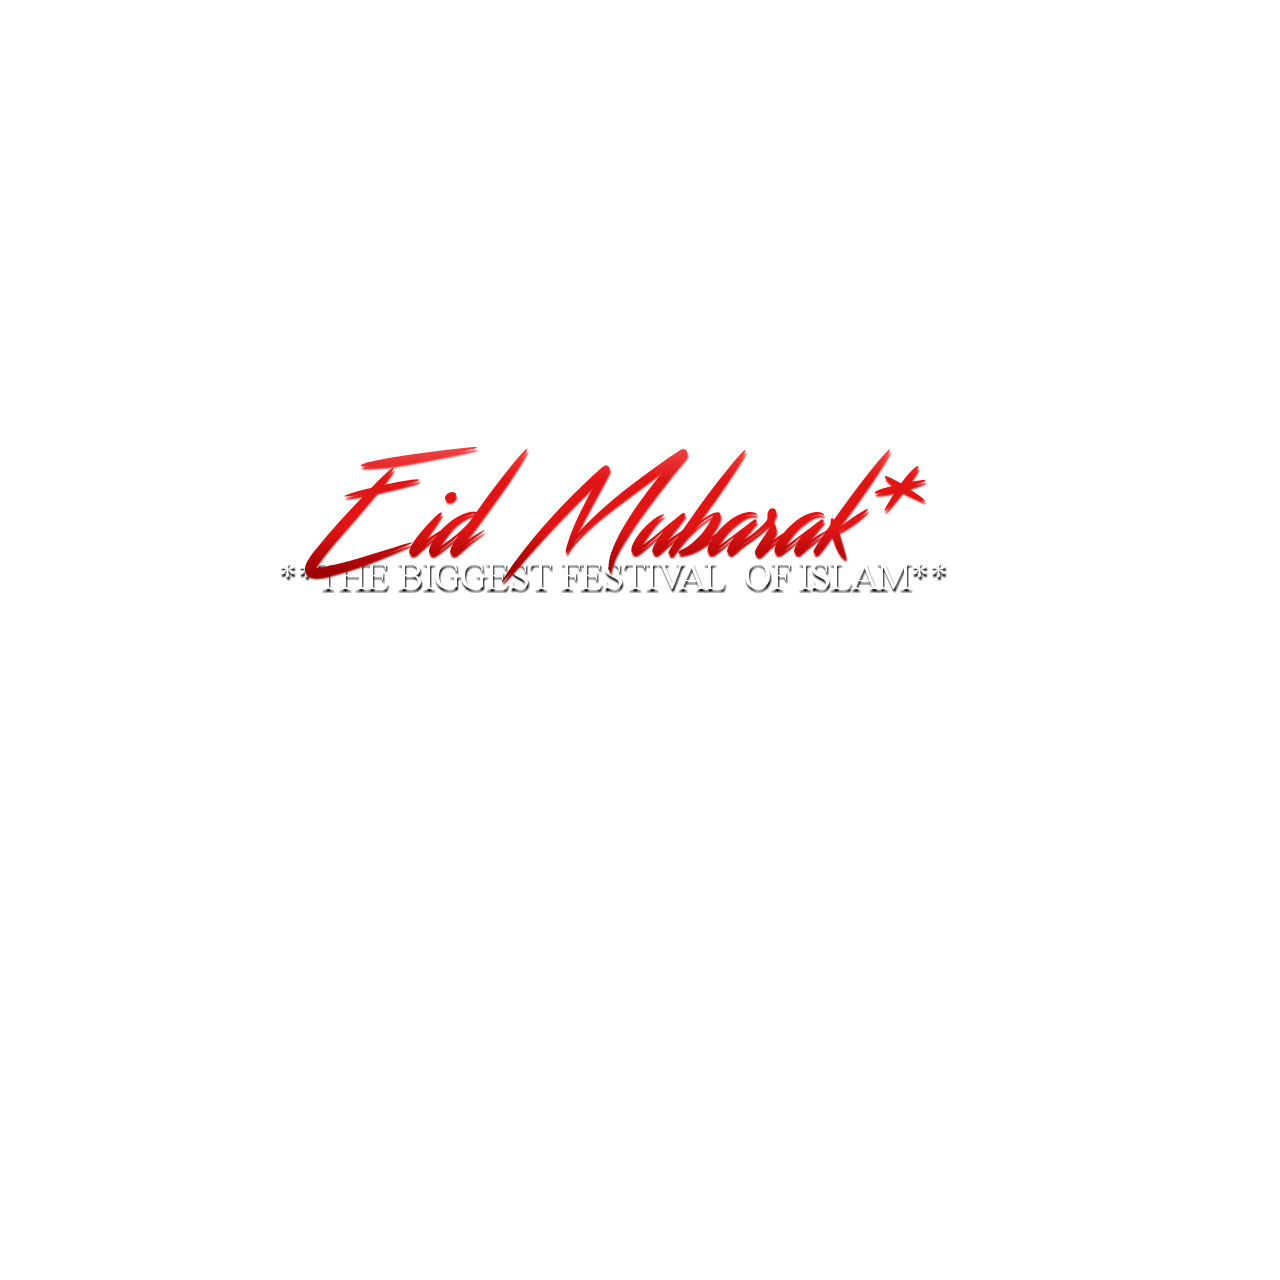 Eid mubarak hd backgrounds and eid mubarak text png 2018 eid mubarak text png m4hsunfo